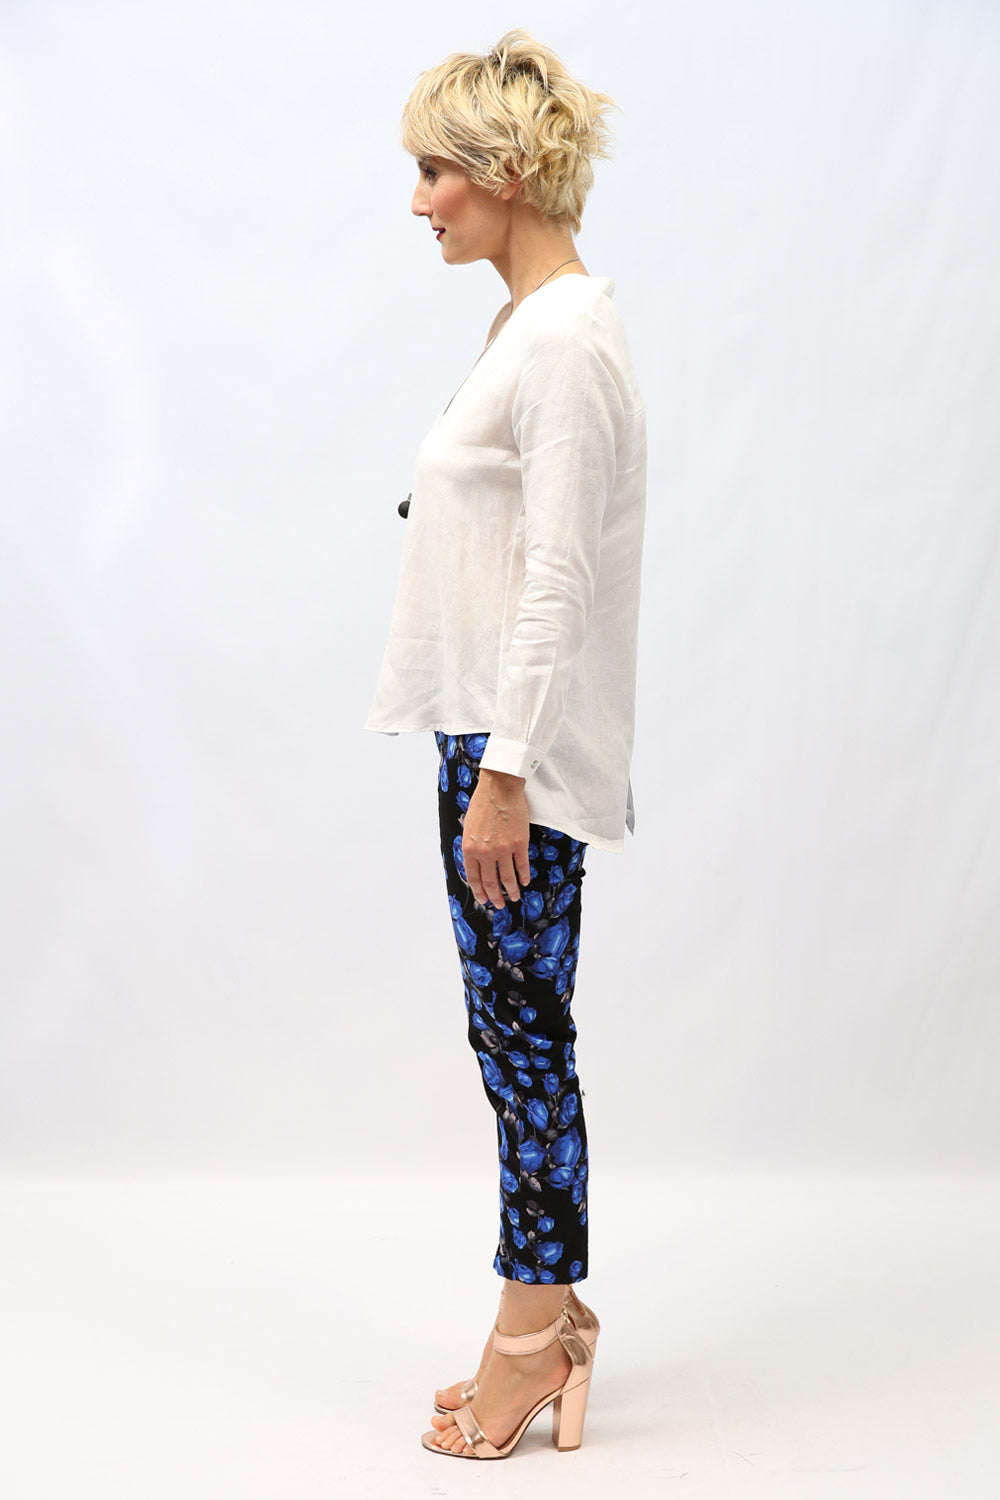 Shea Pant | Addicted to Life | Pants | Summer Collection | Fashion Design | Annah Stretton | New Zealand Fashion Designer